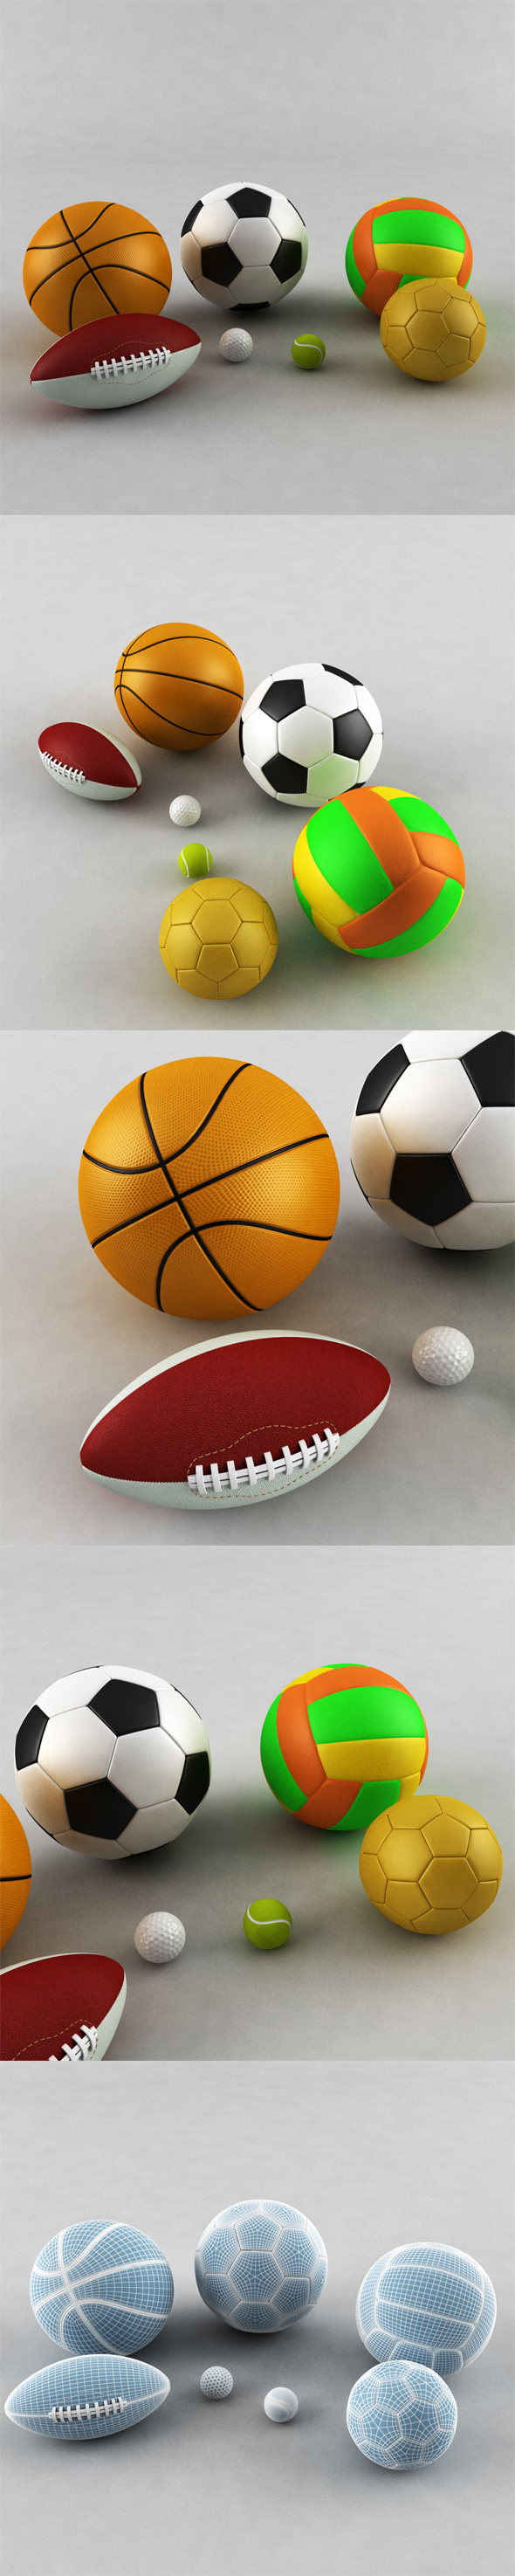 Sports Ball Collection - 3DOcean Item for Sale